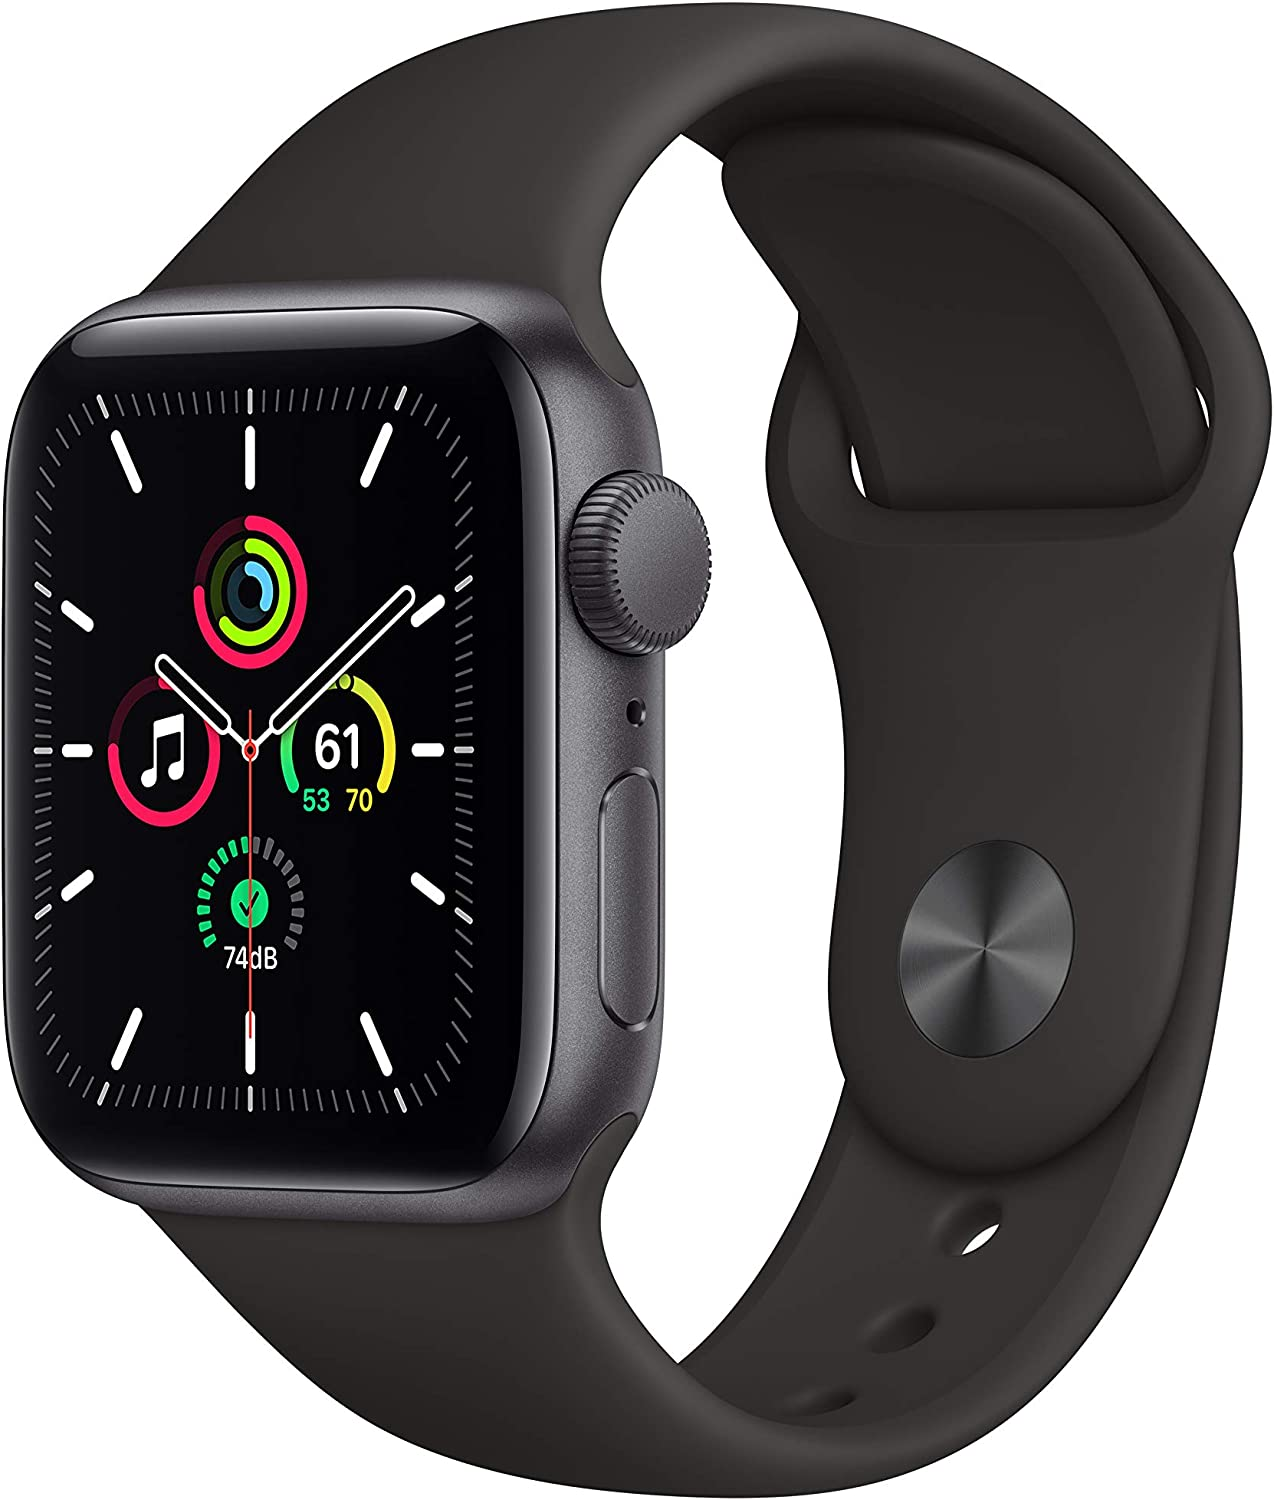 Is the Apple Watch Worth It?